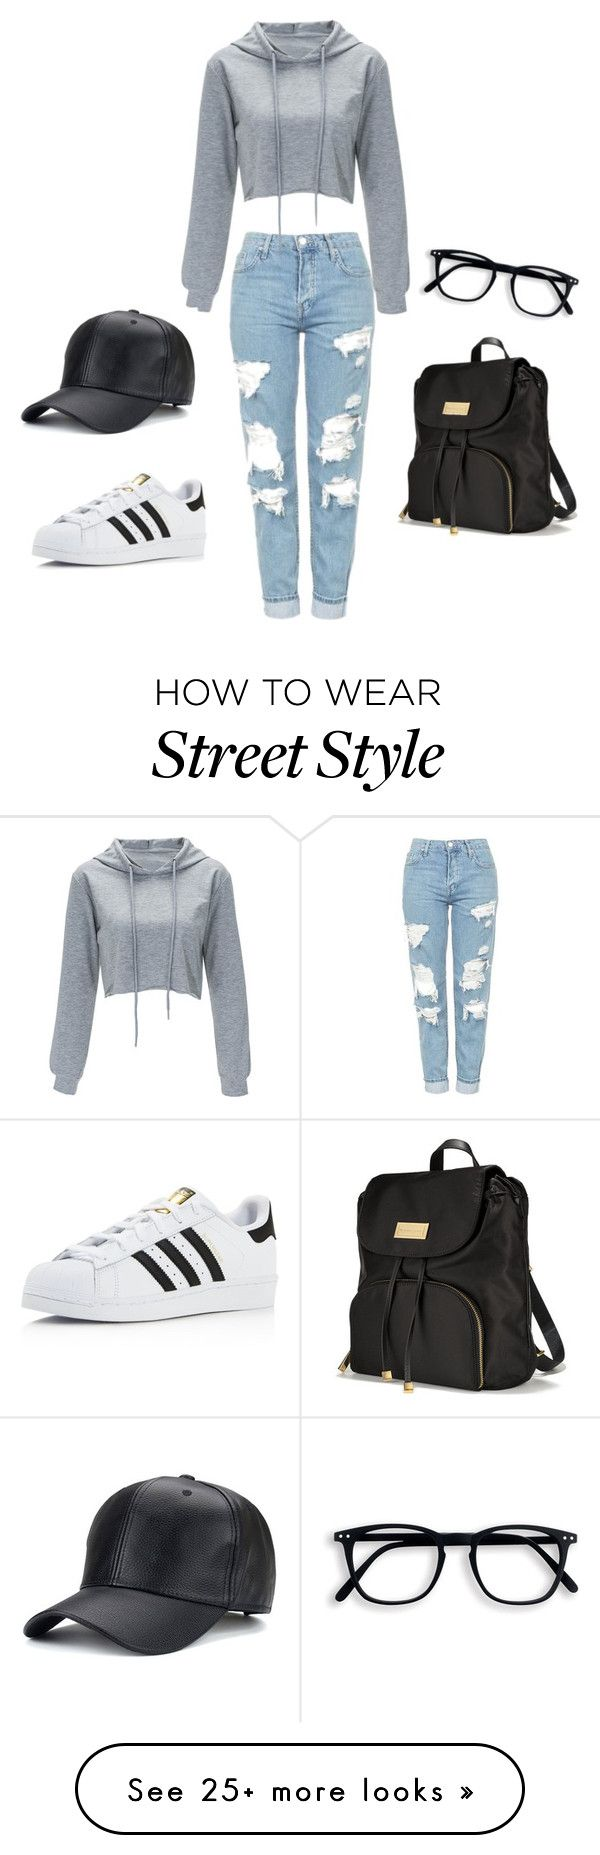 street style by marion-randrianarisoa on Polyvore featuring Topshop, adidas and Victorias Secret